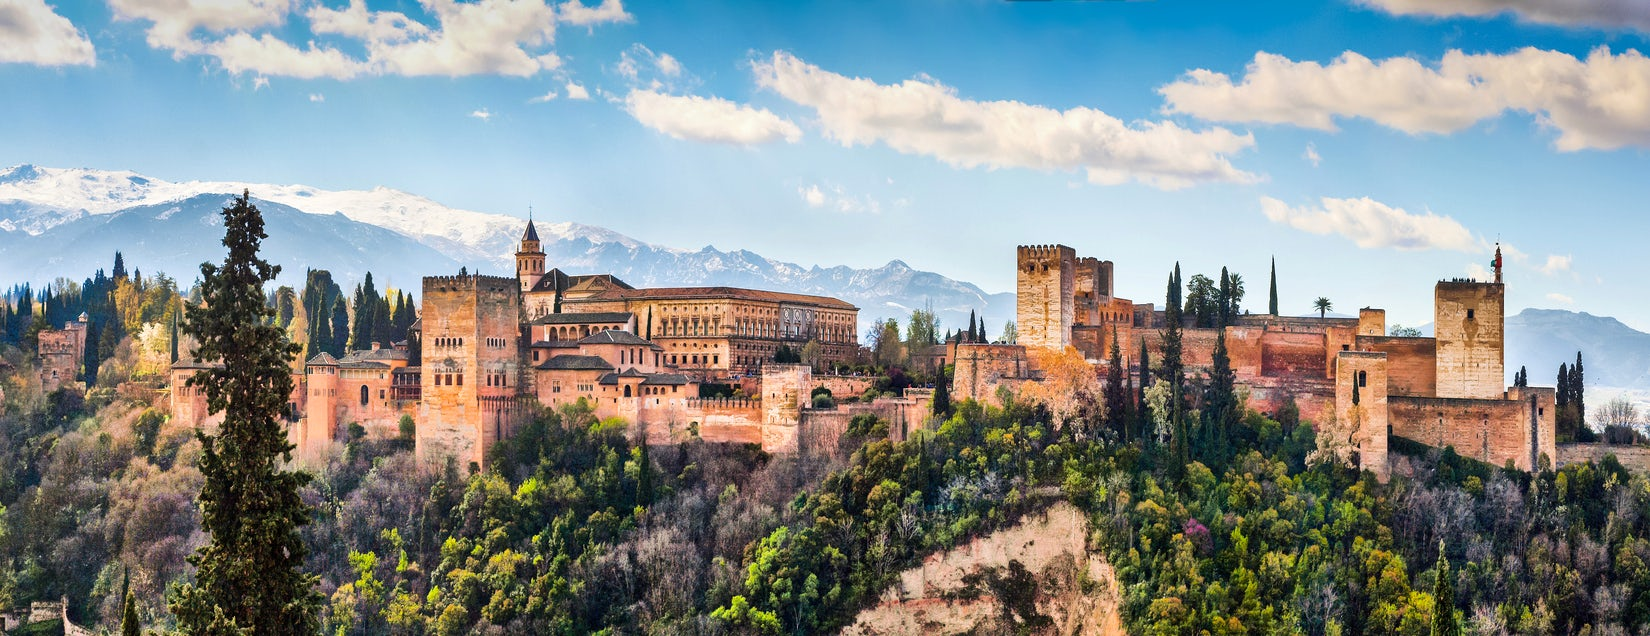 an introduction to the history and culture of granada a city in spain Granada is a city that falls in love with it, and for centuries granada has been a cosmopolitan city with a great history people from all corners of the world come to visit and decide to stay and live for their modern and traditional character at the same time.